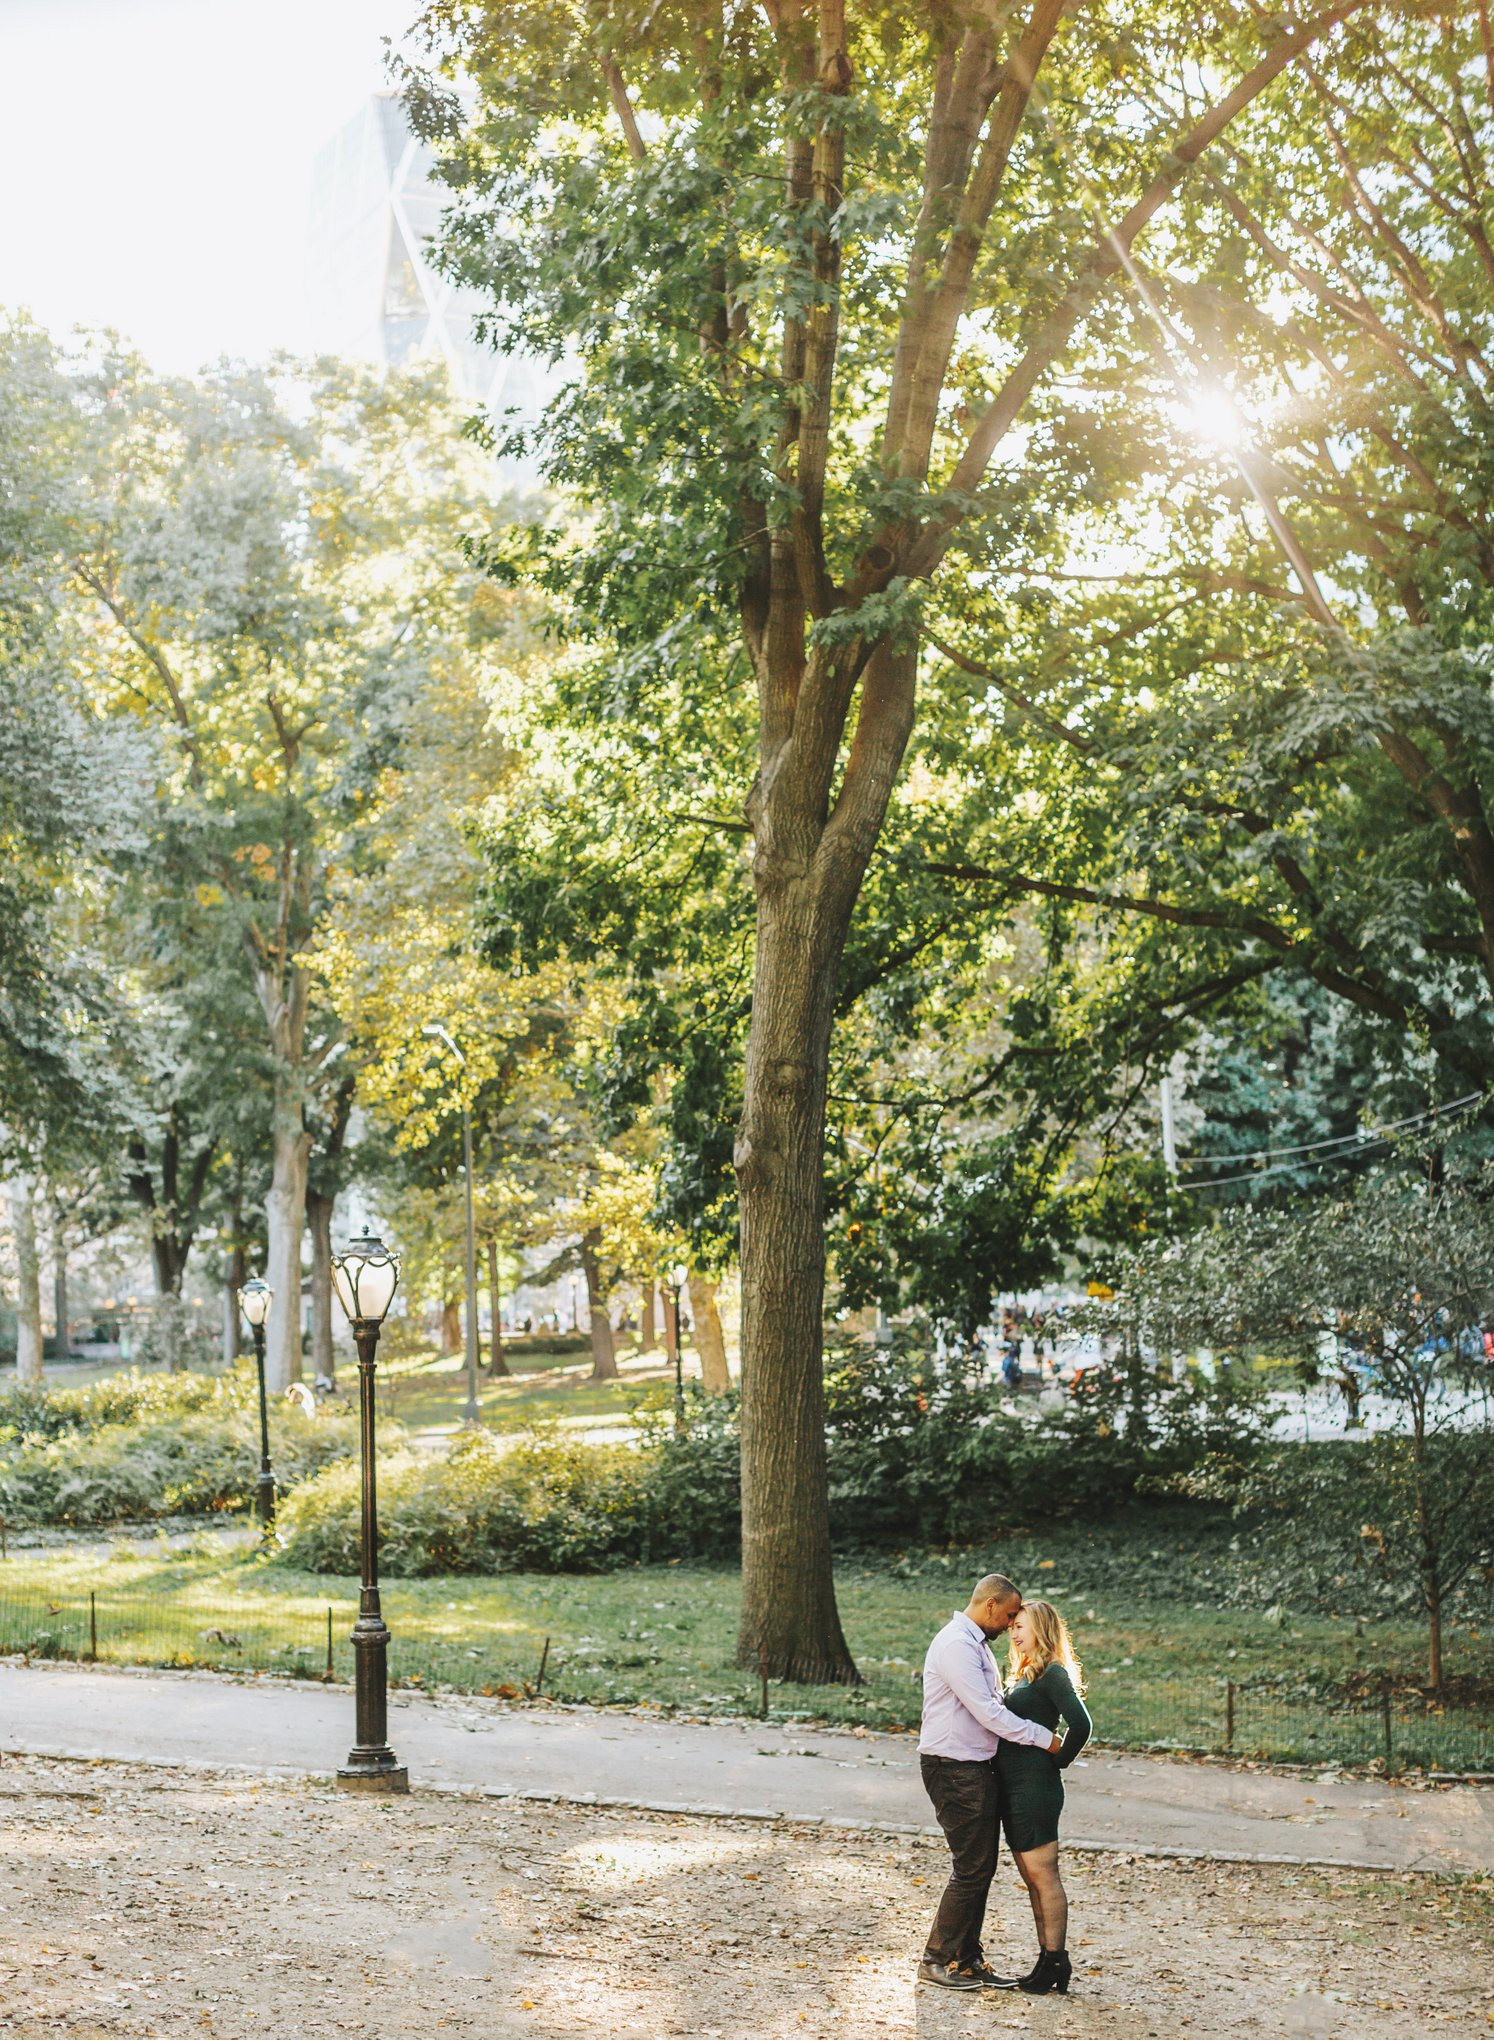 NYC_Engagement_Photographer-11.jpg